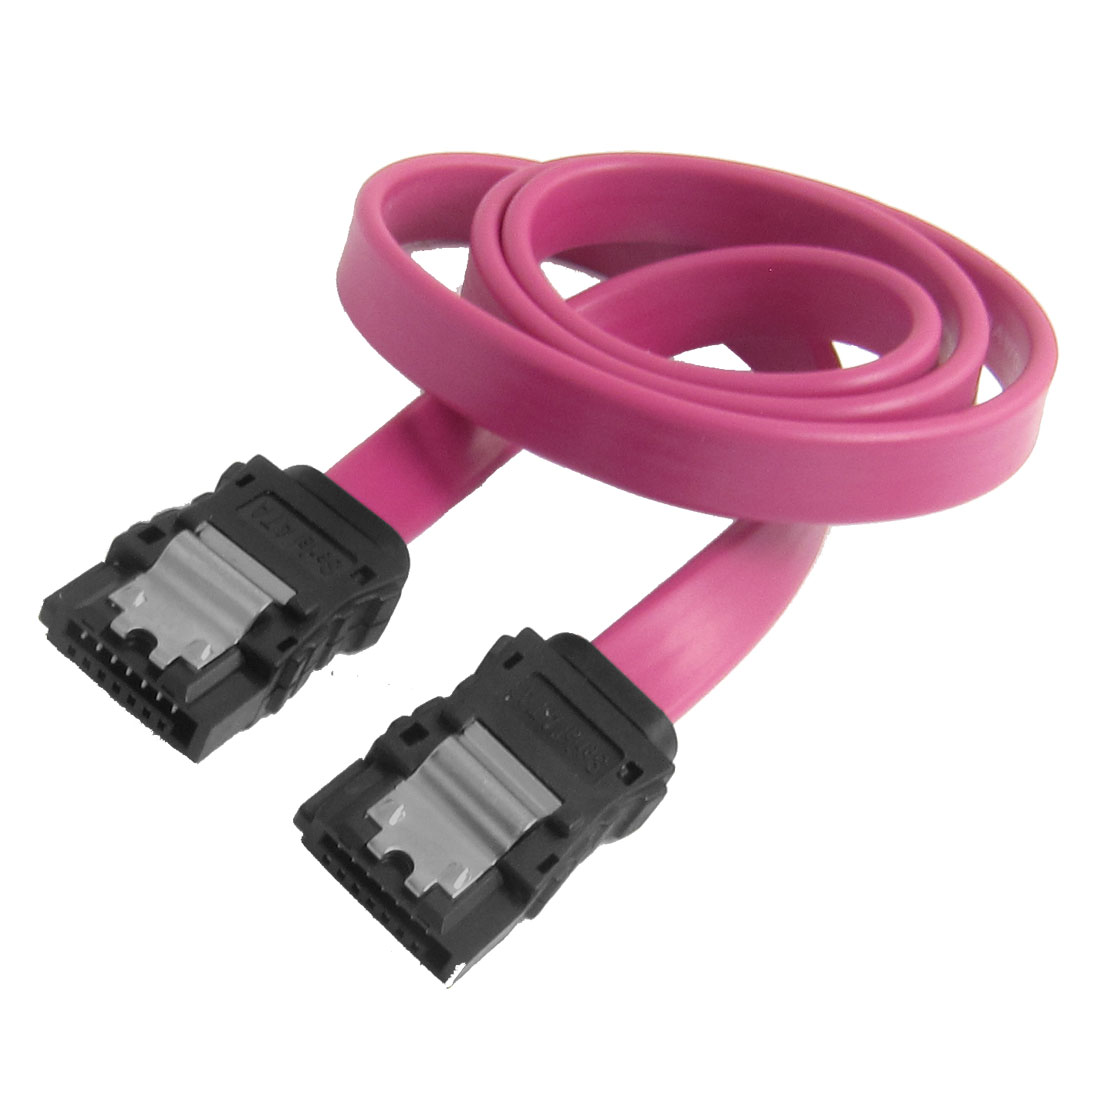 Serial ATA SATA 7 Pin Female Cable + Shrapnel for HD Hard Drive